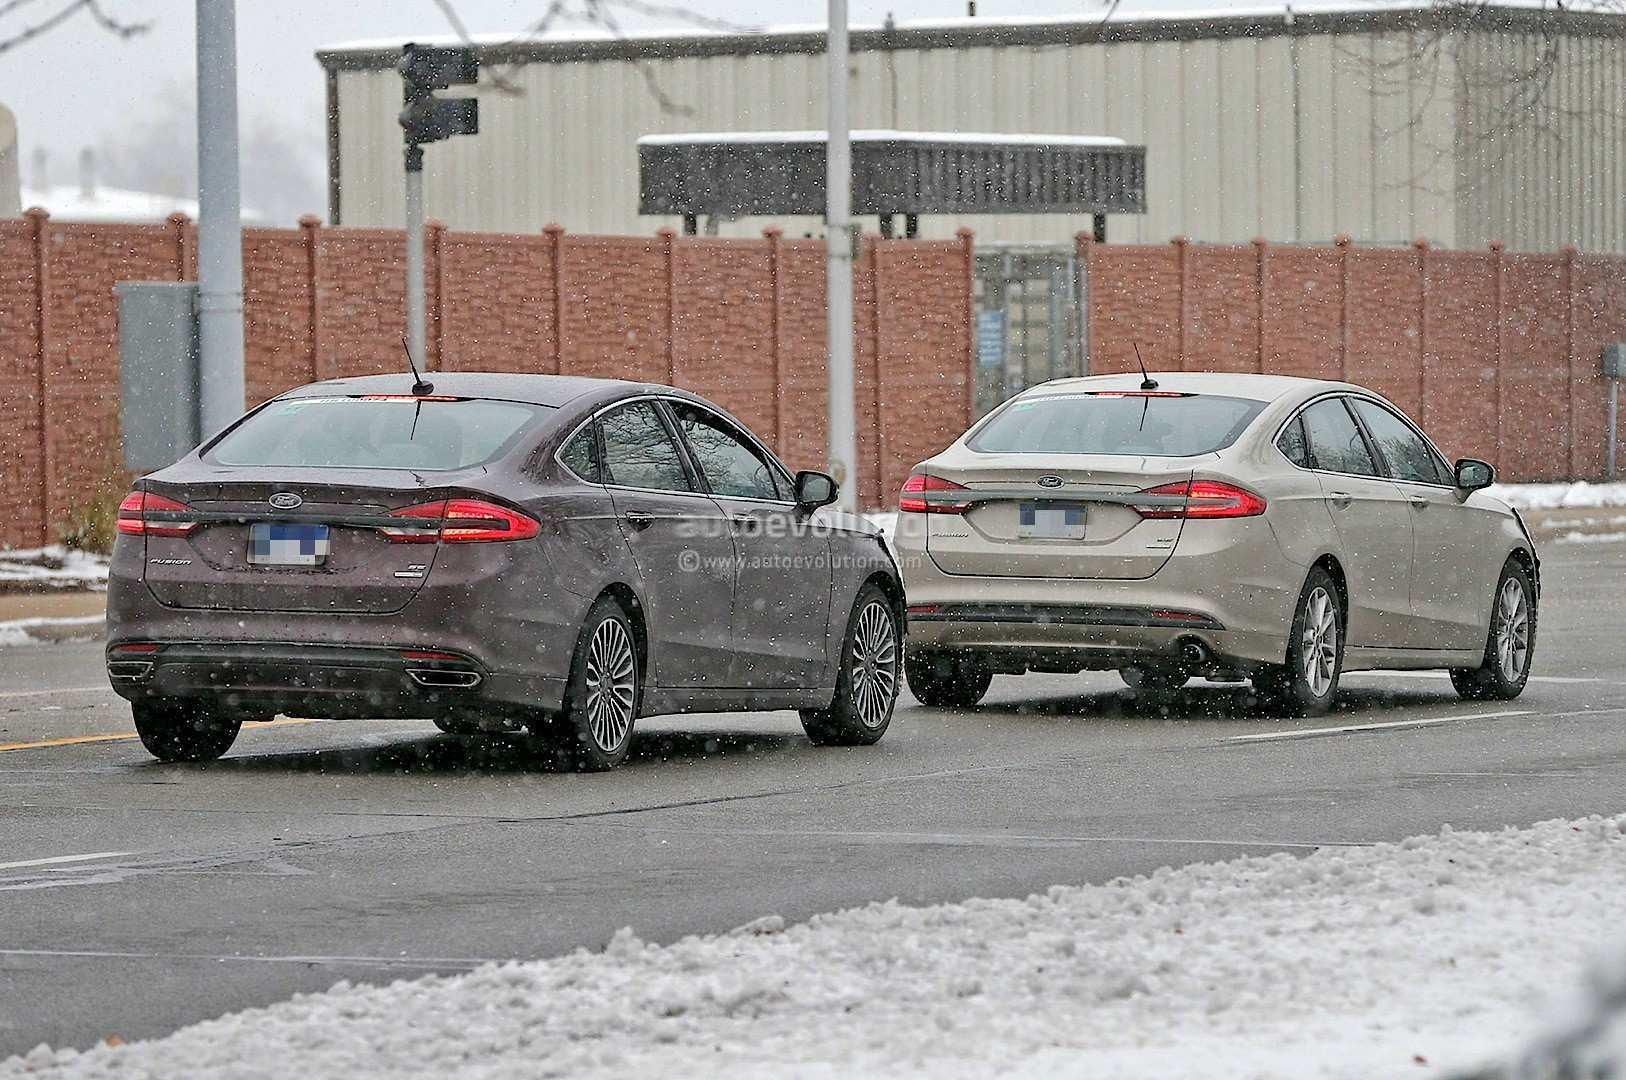 66 New Spy Shots Ford Fusion Ratings